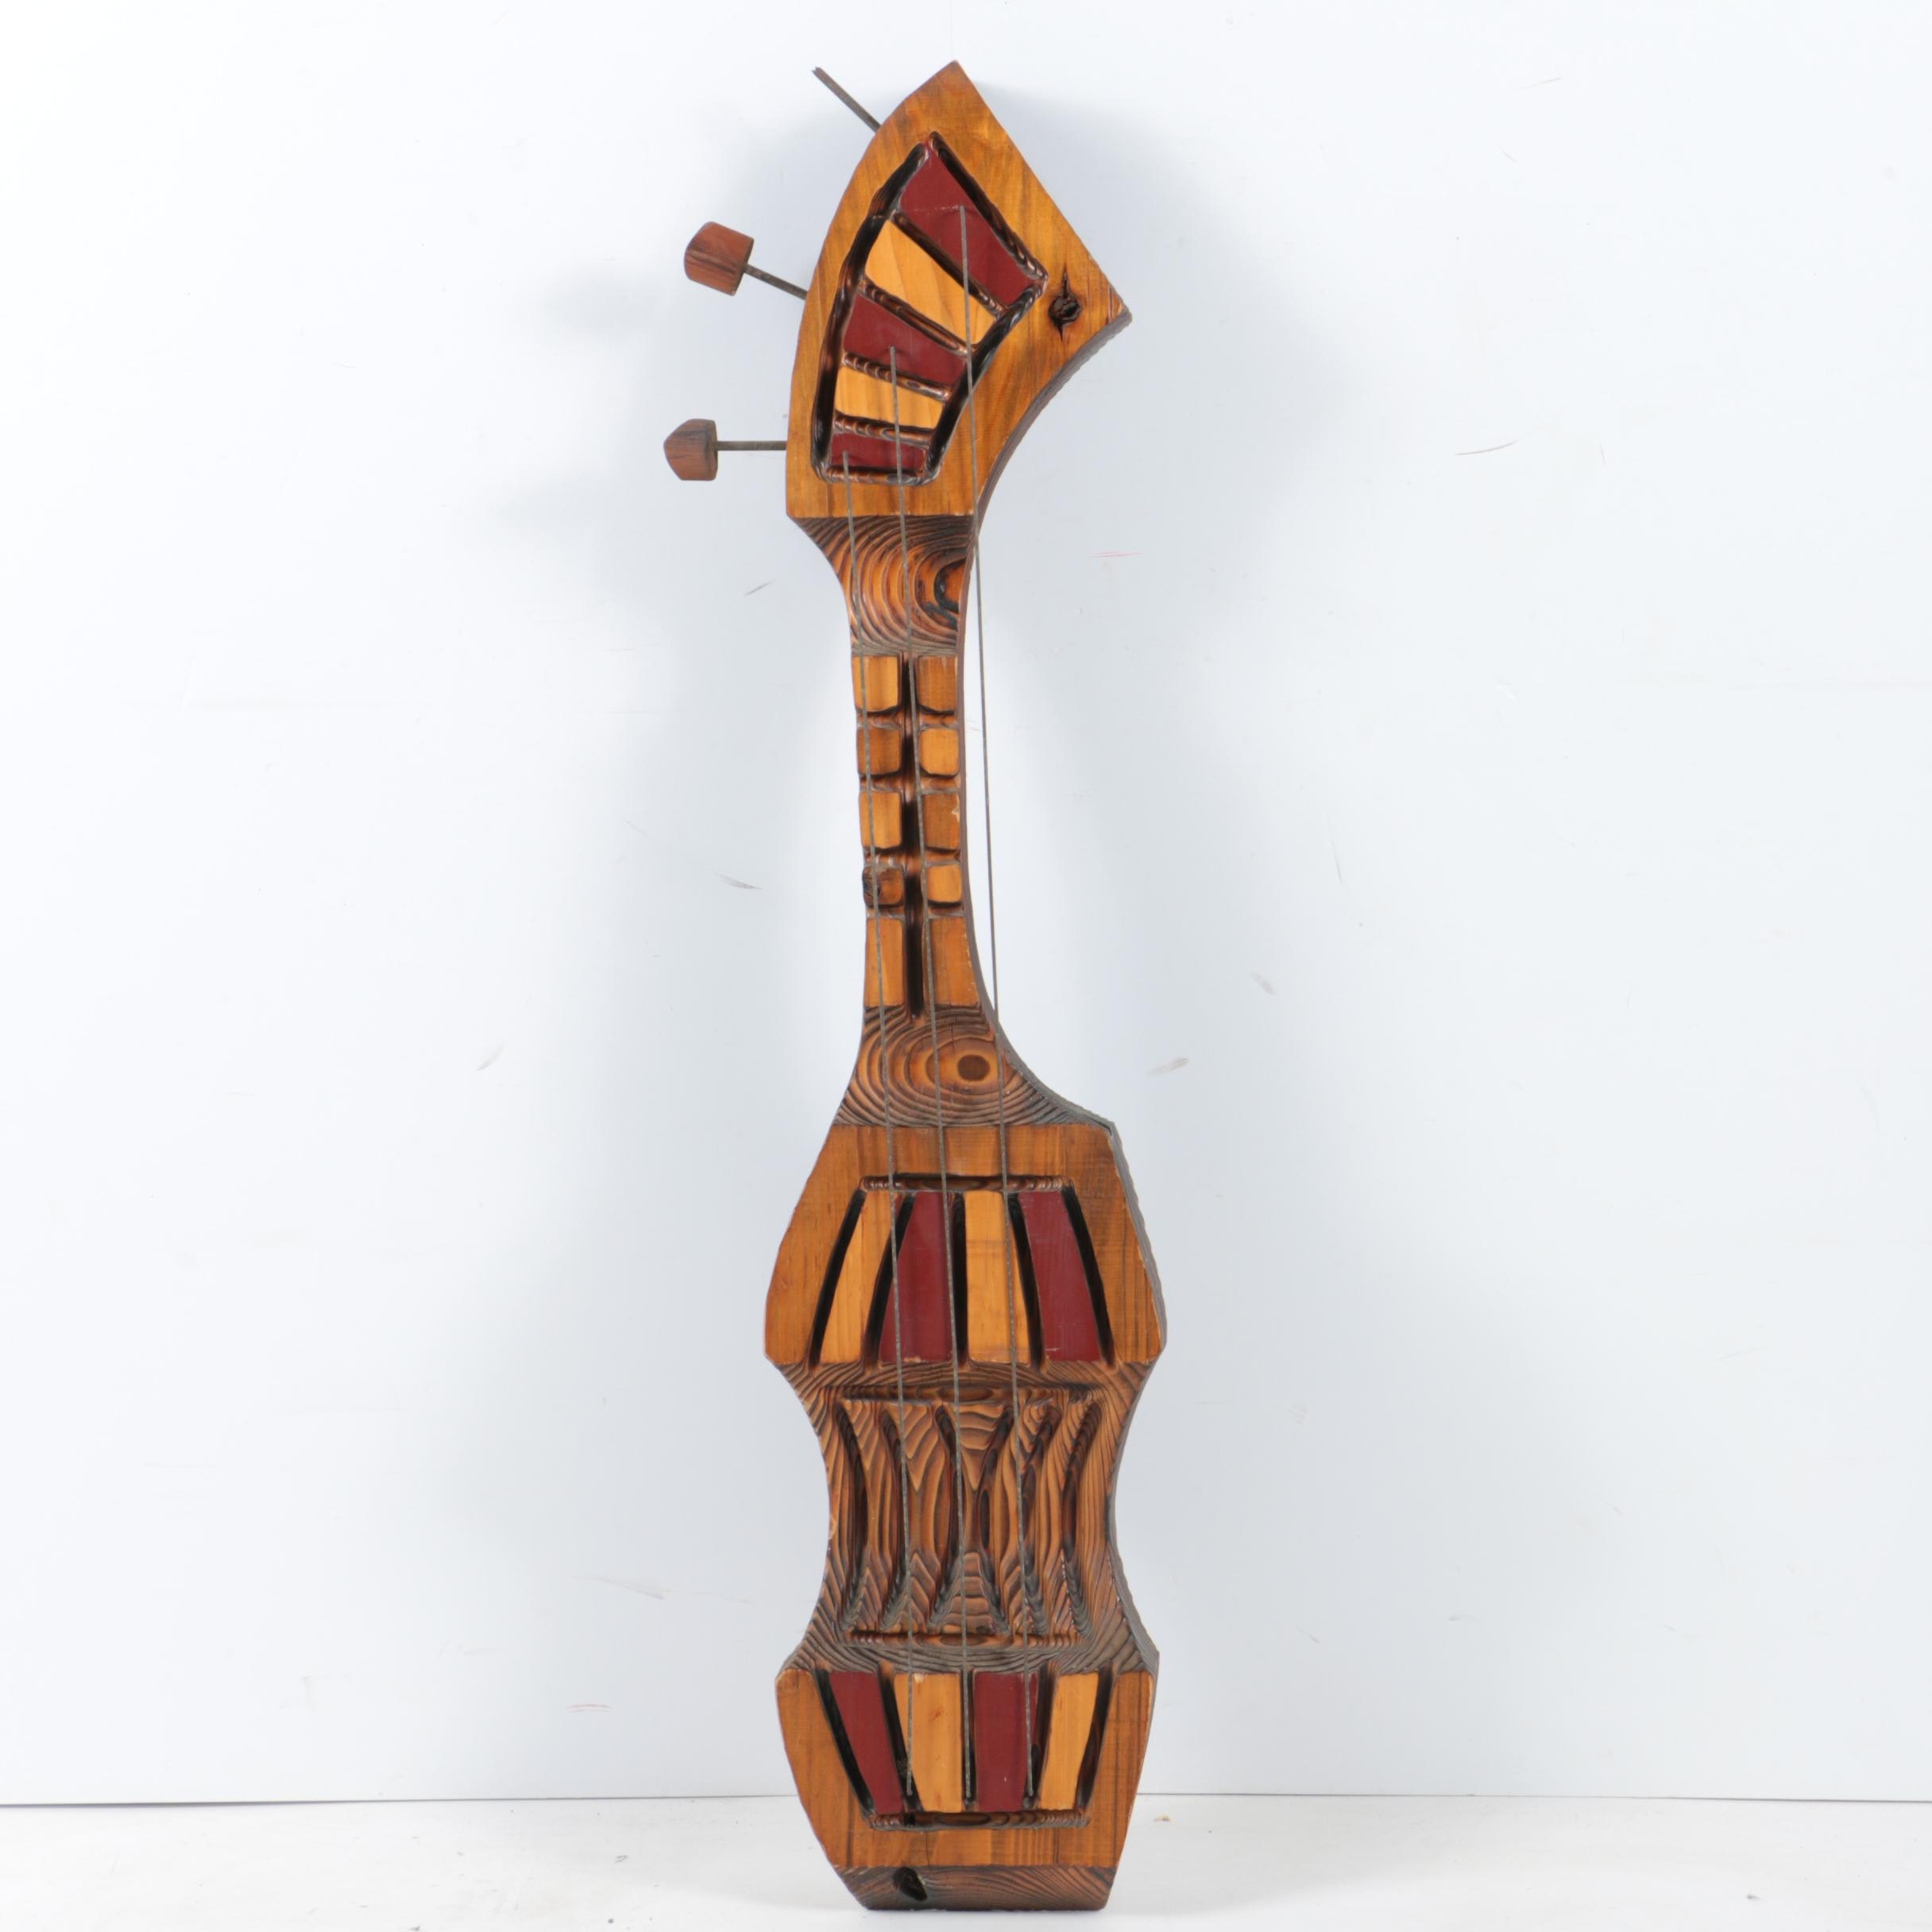 Witco Carved Wooden Guitar Sculpture